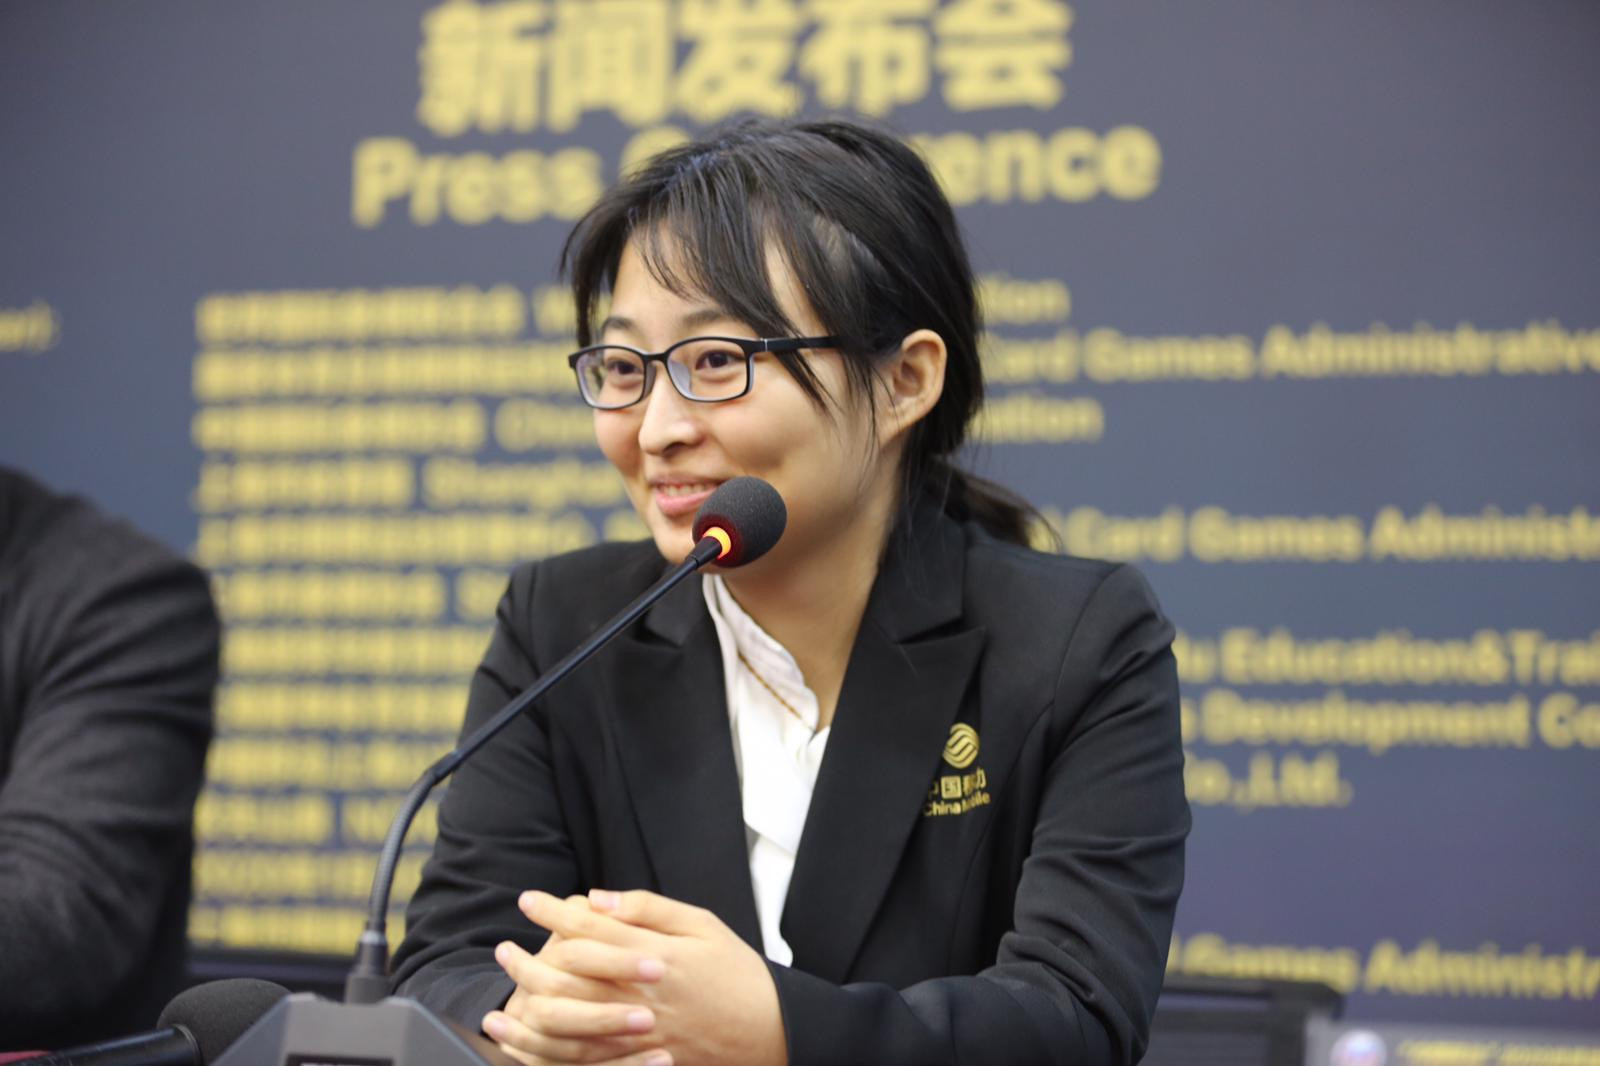 Ju Wenjun claimed the first victory of this year's Women's World Chess Championship ©FIDE